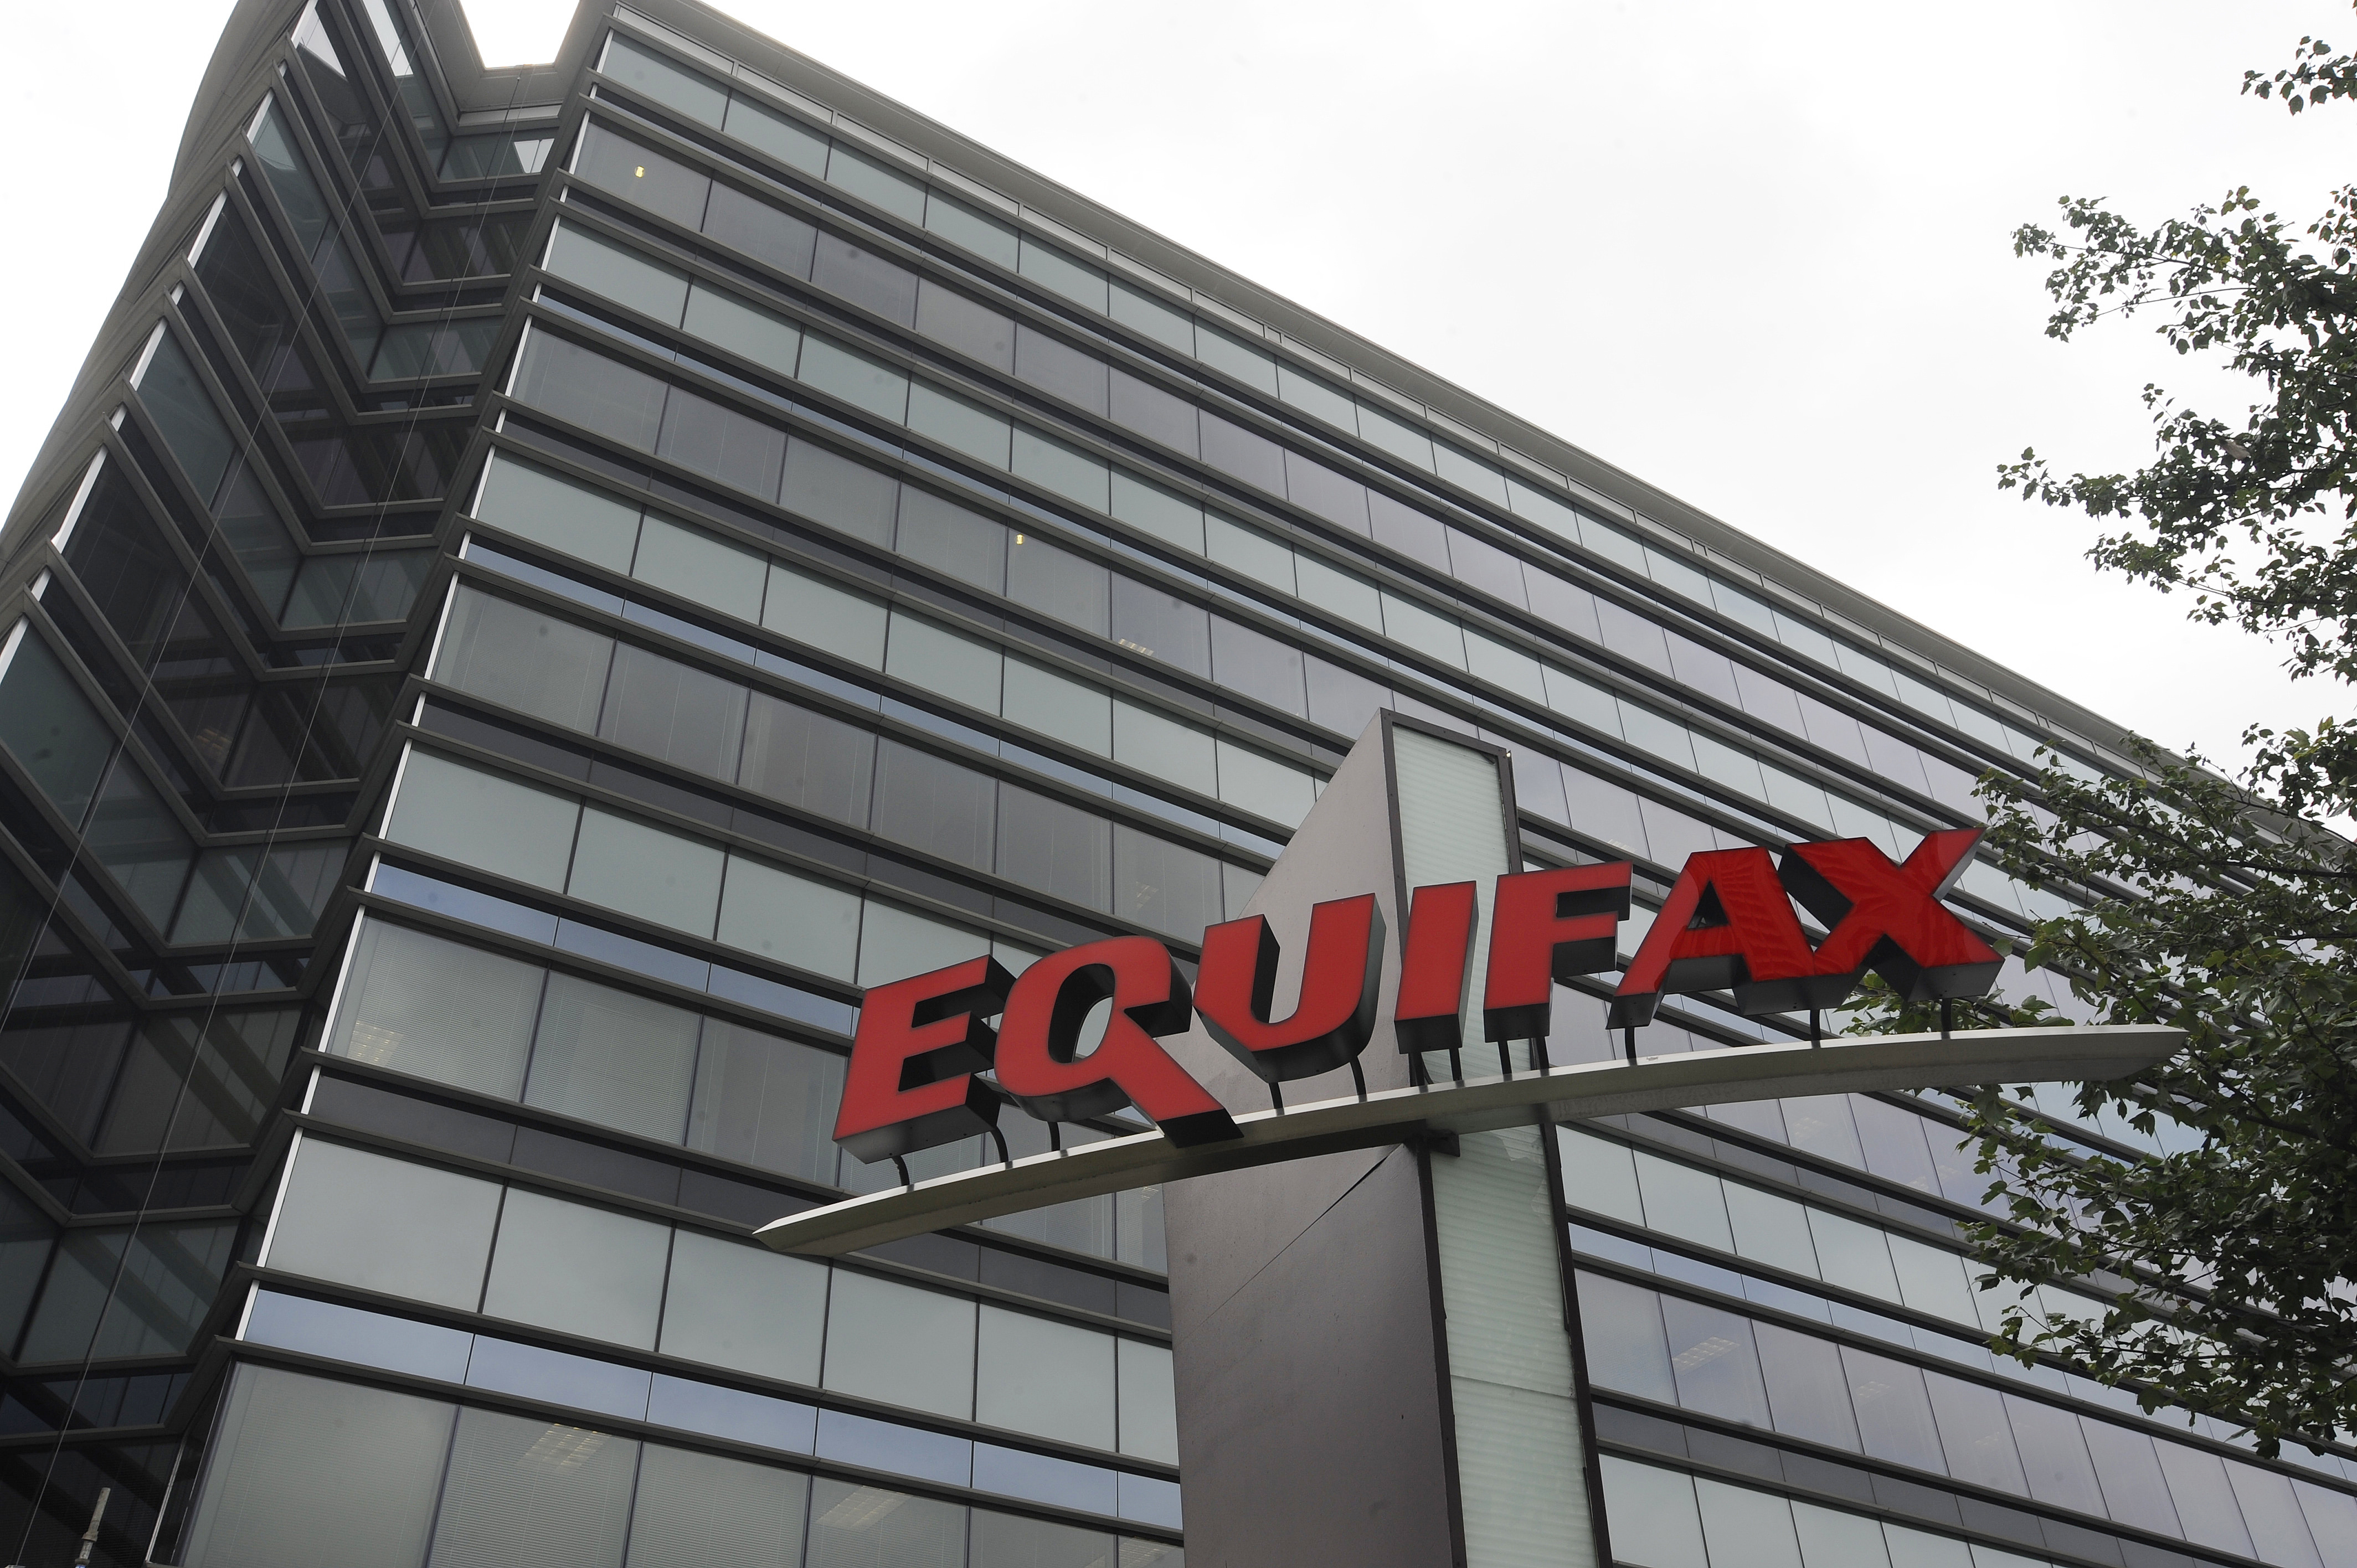 Why Equifax needs to give up some details about how it got hacked